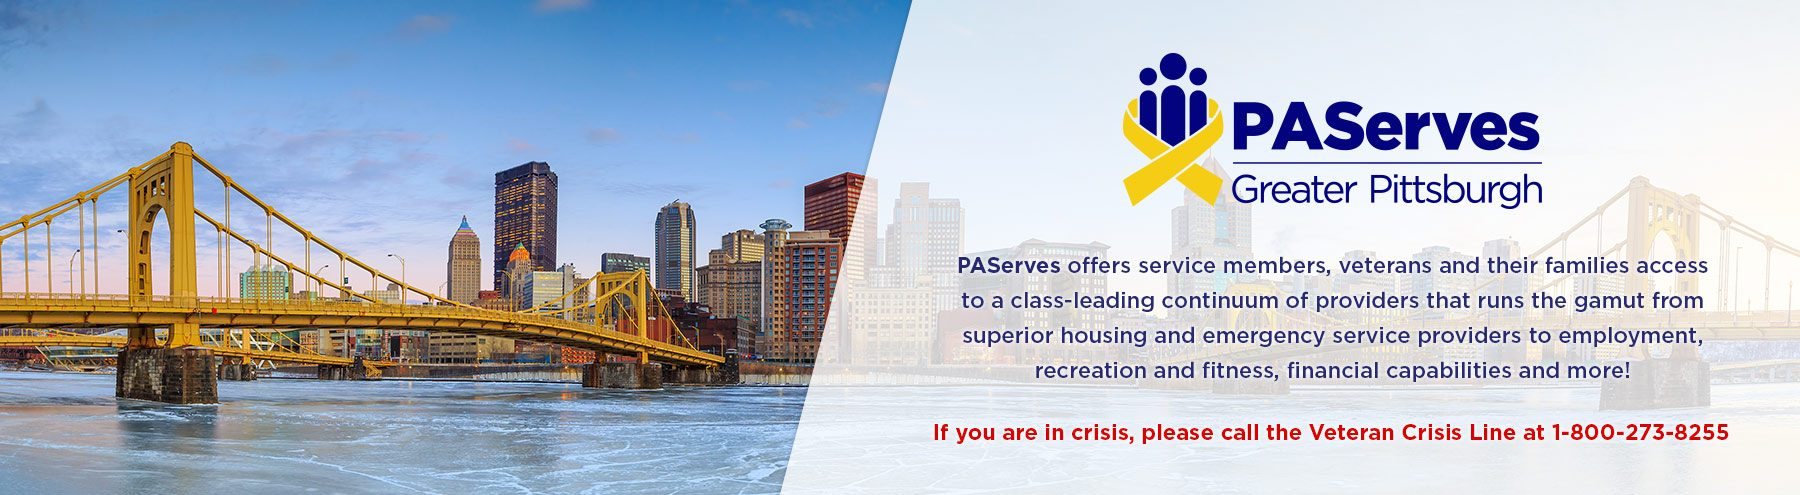 If you are in crisis, please call the Veteran Crisis Line at 1-800-272-8255. PAServes - Greater Pittsburgh offers service members, veterans and their families access to a class-leading continuum of providers that runs the gamut from superior housing and emergency service providers to employment, recreation and fitness, financial capabilities and more!